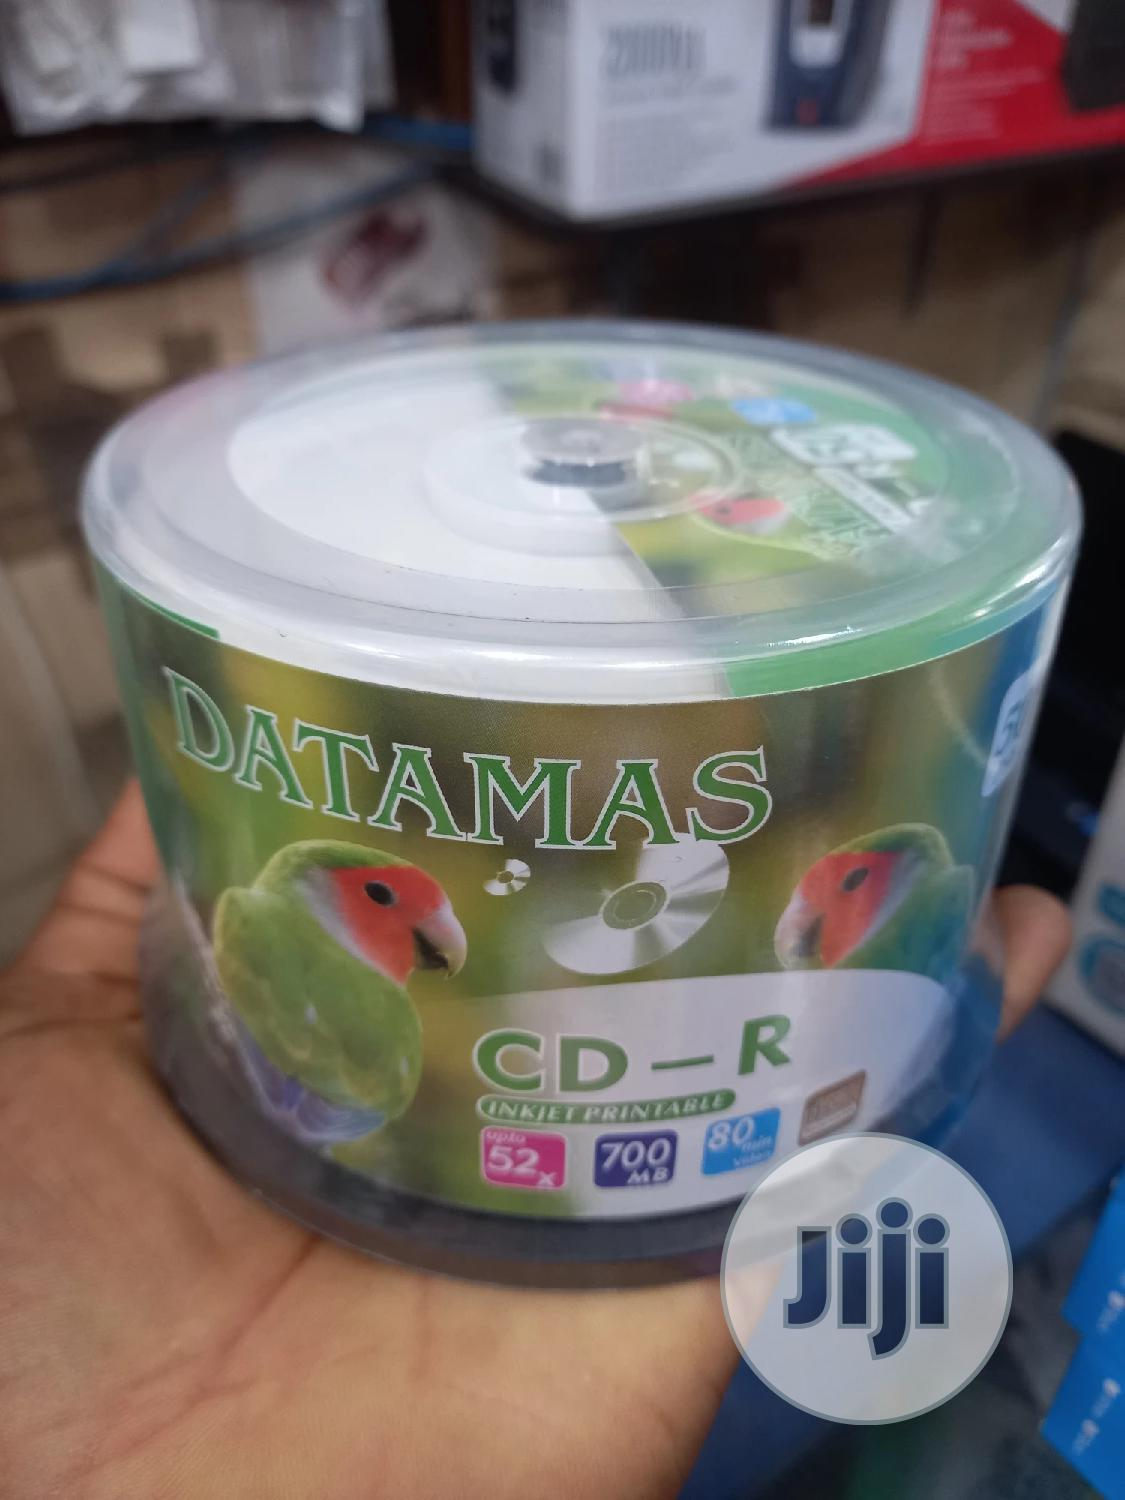 DATAMAS CD-R Printable By 50 | CDs & DVDs for sale in Ikeja, Lagos State, Nigeria